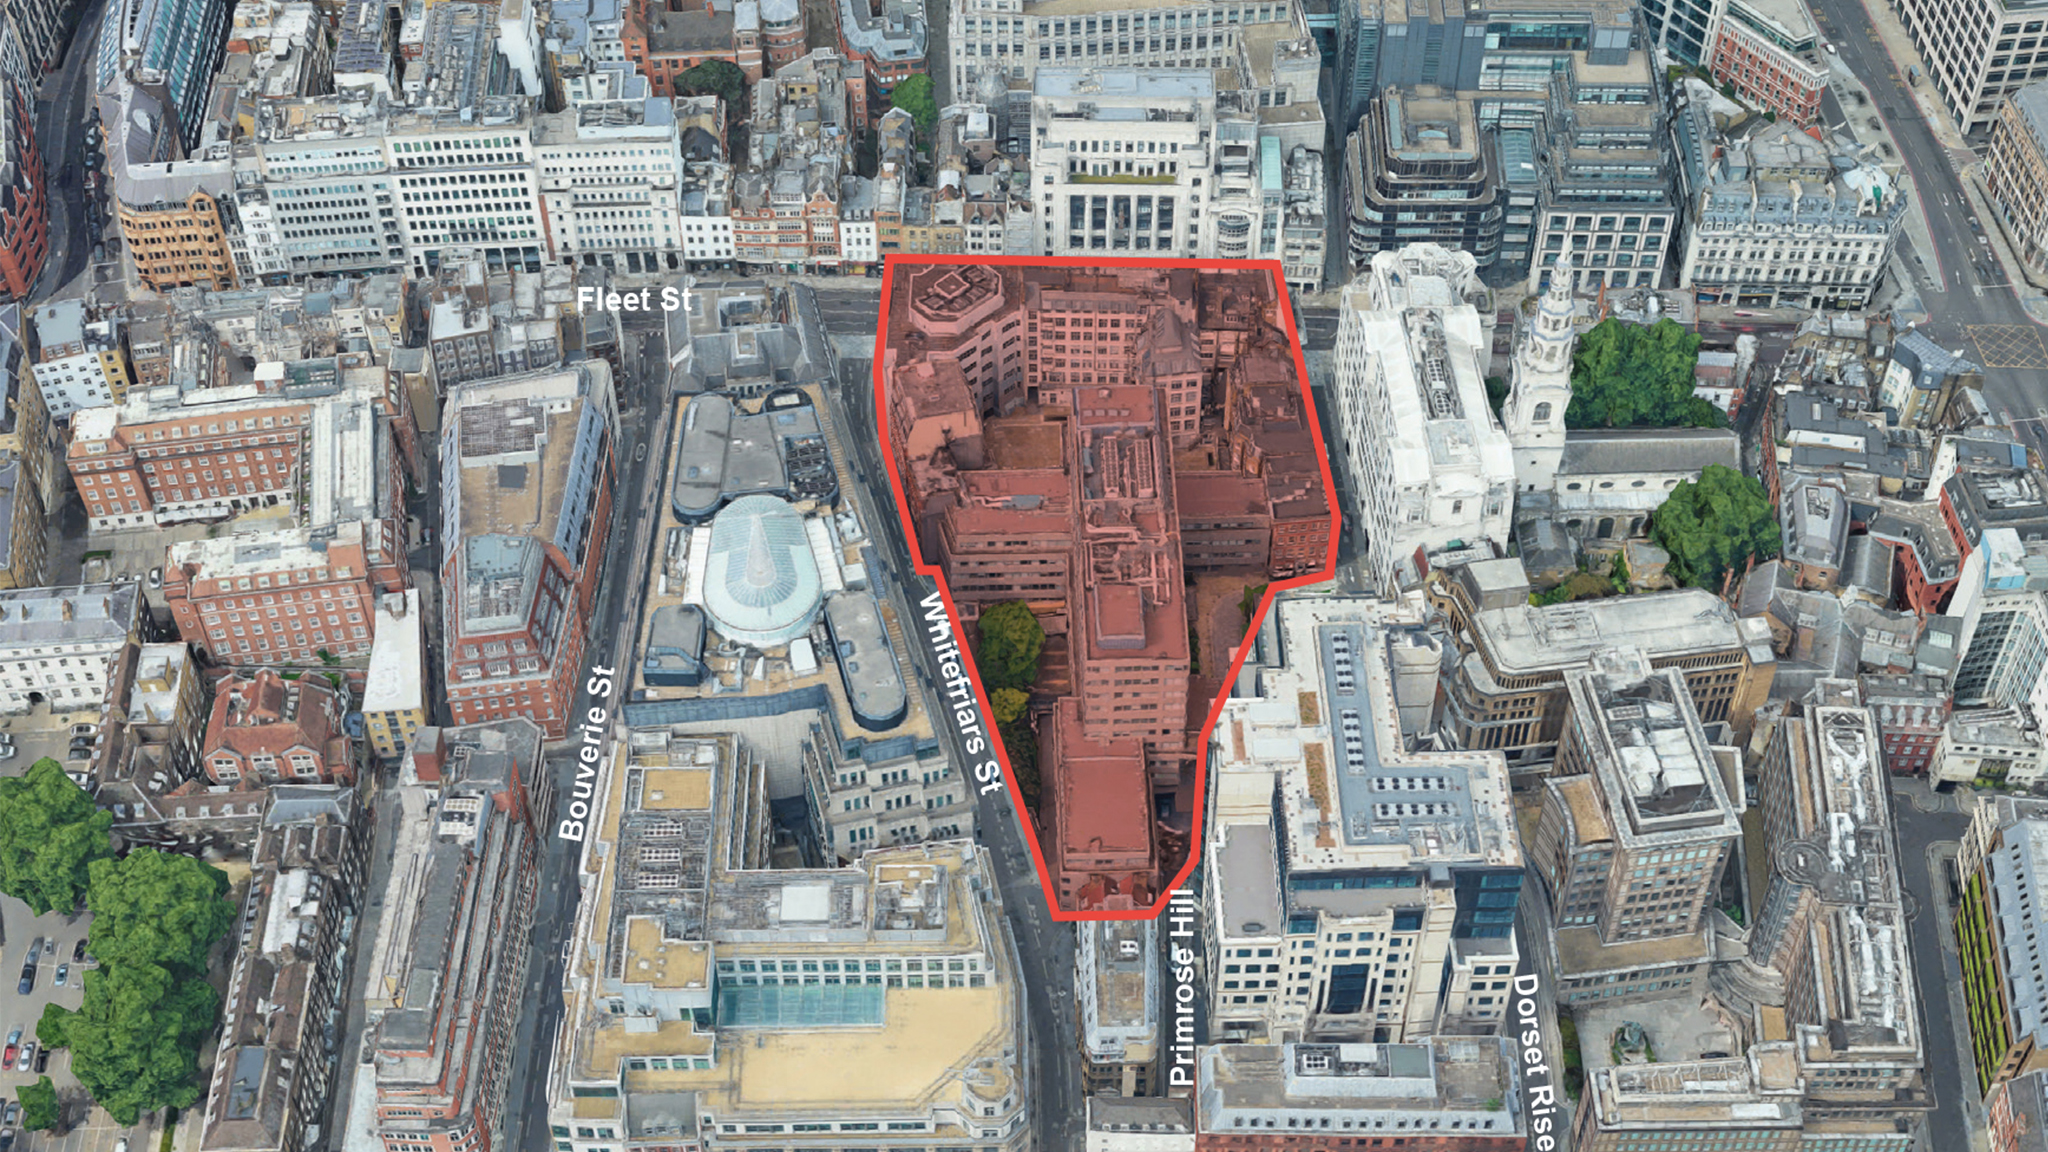 City of London unveils Fleet Street court and police complex plan